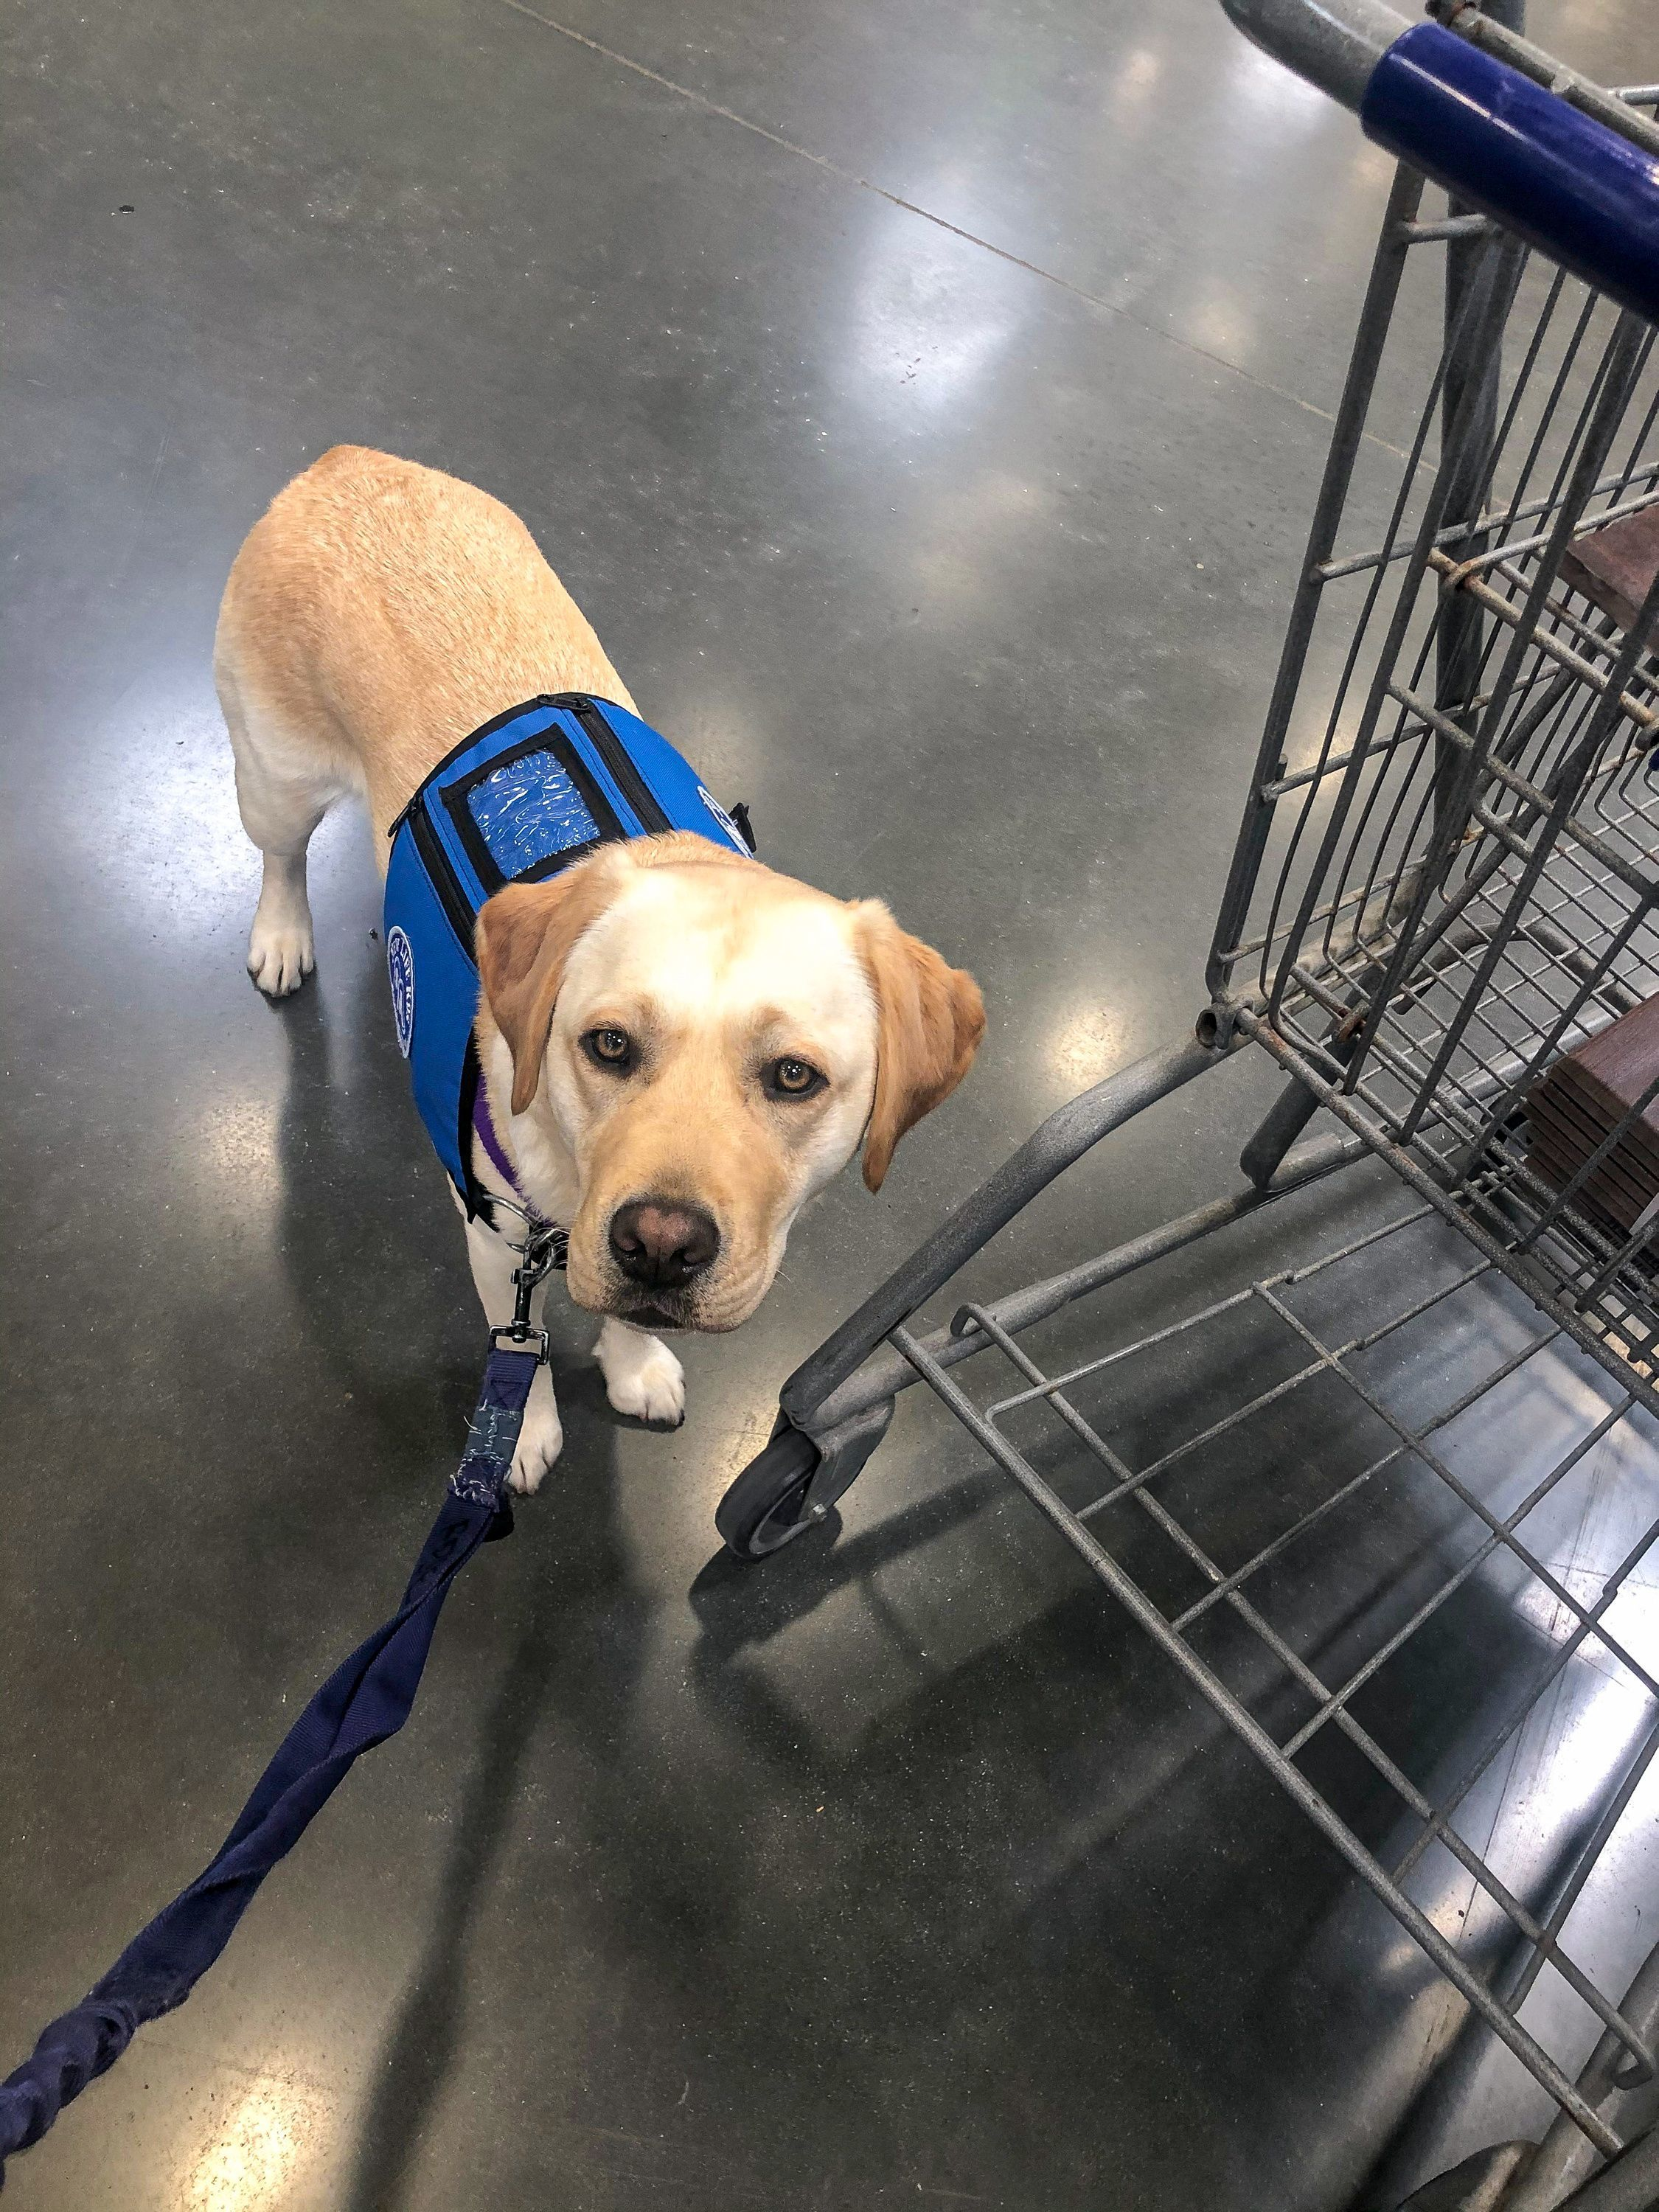 What Traits Can Qualify or Disqualify a Dog from Becoming a Service Dog?